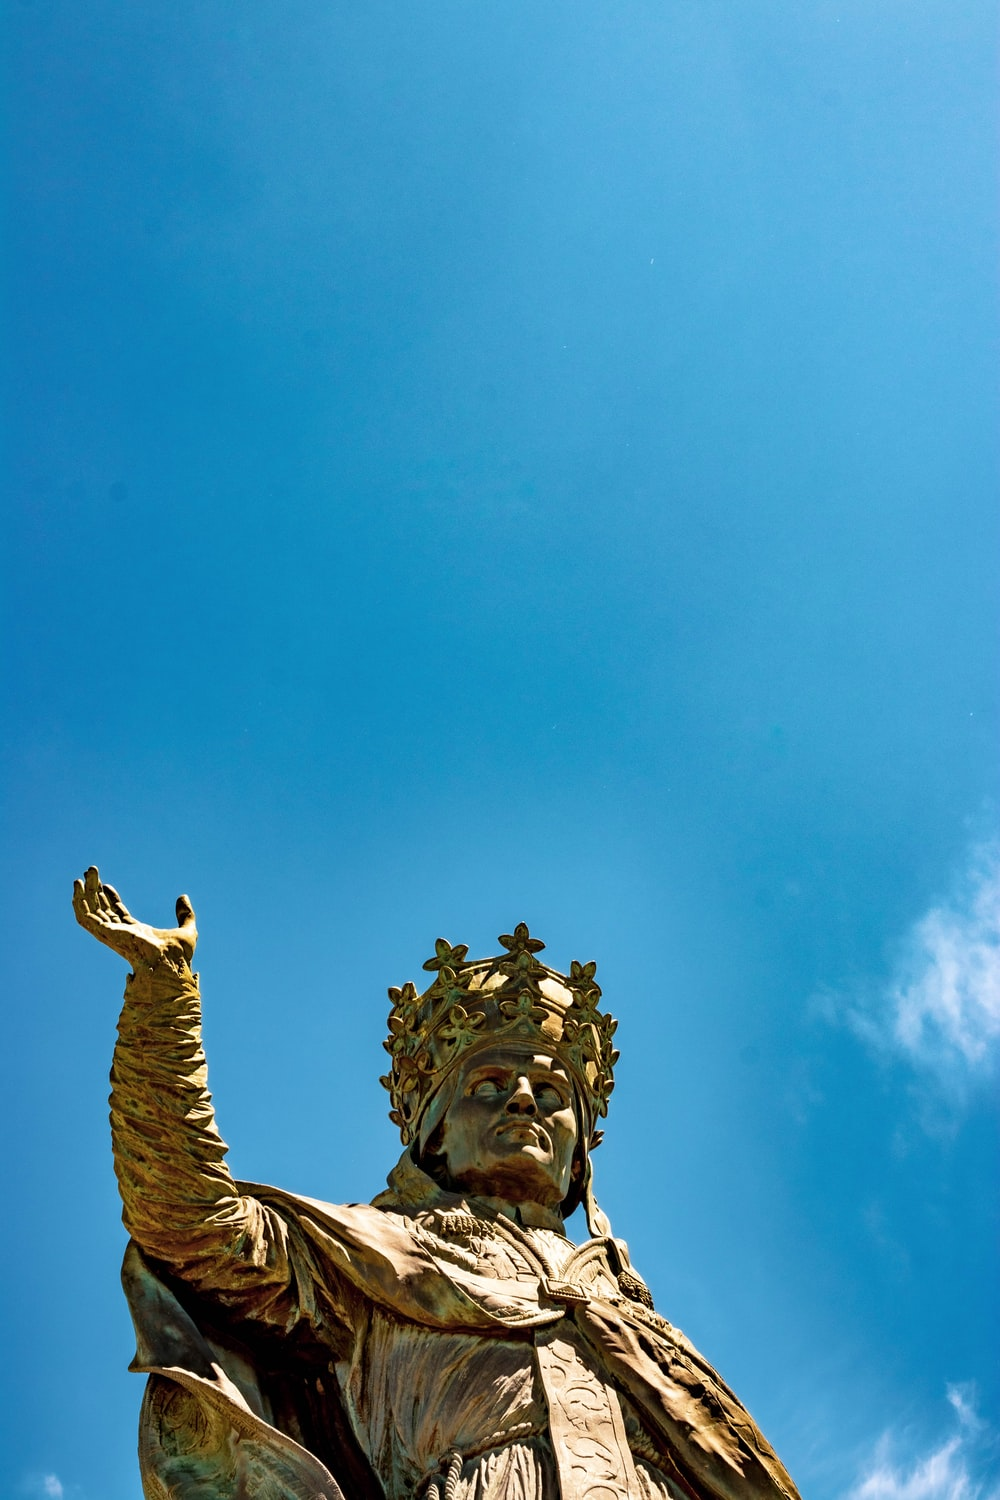 low angle view of king statue under clear blue sky